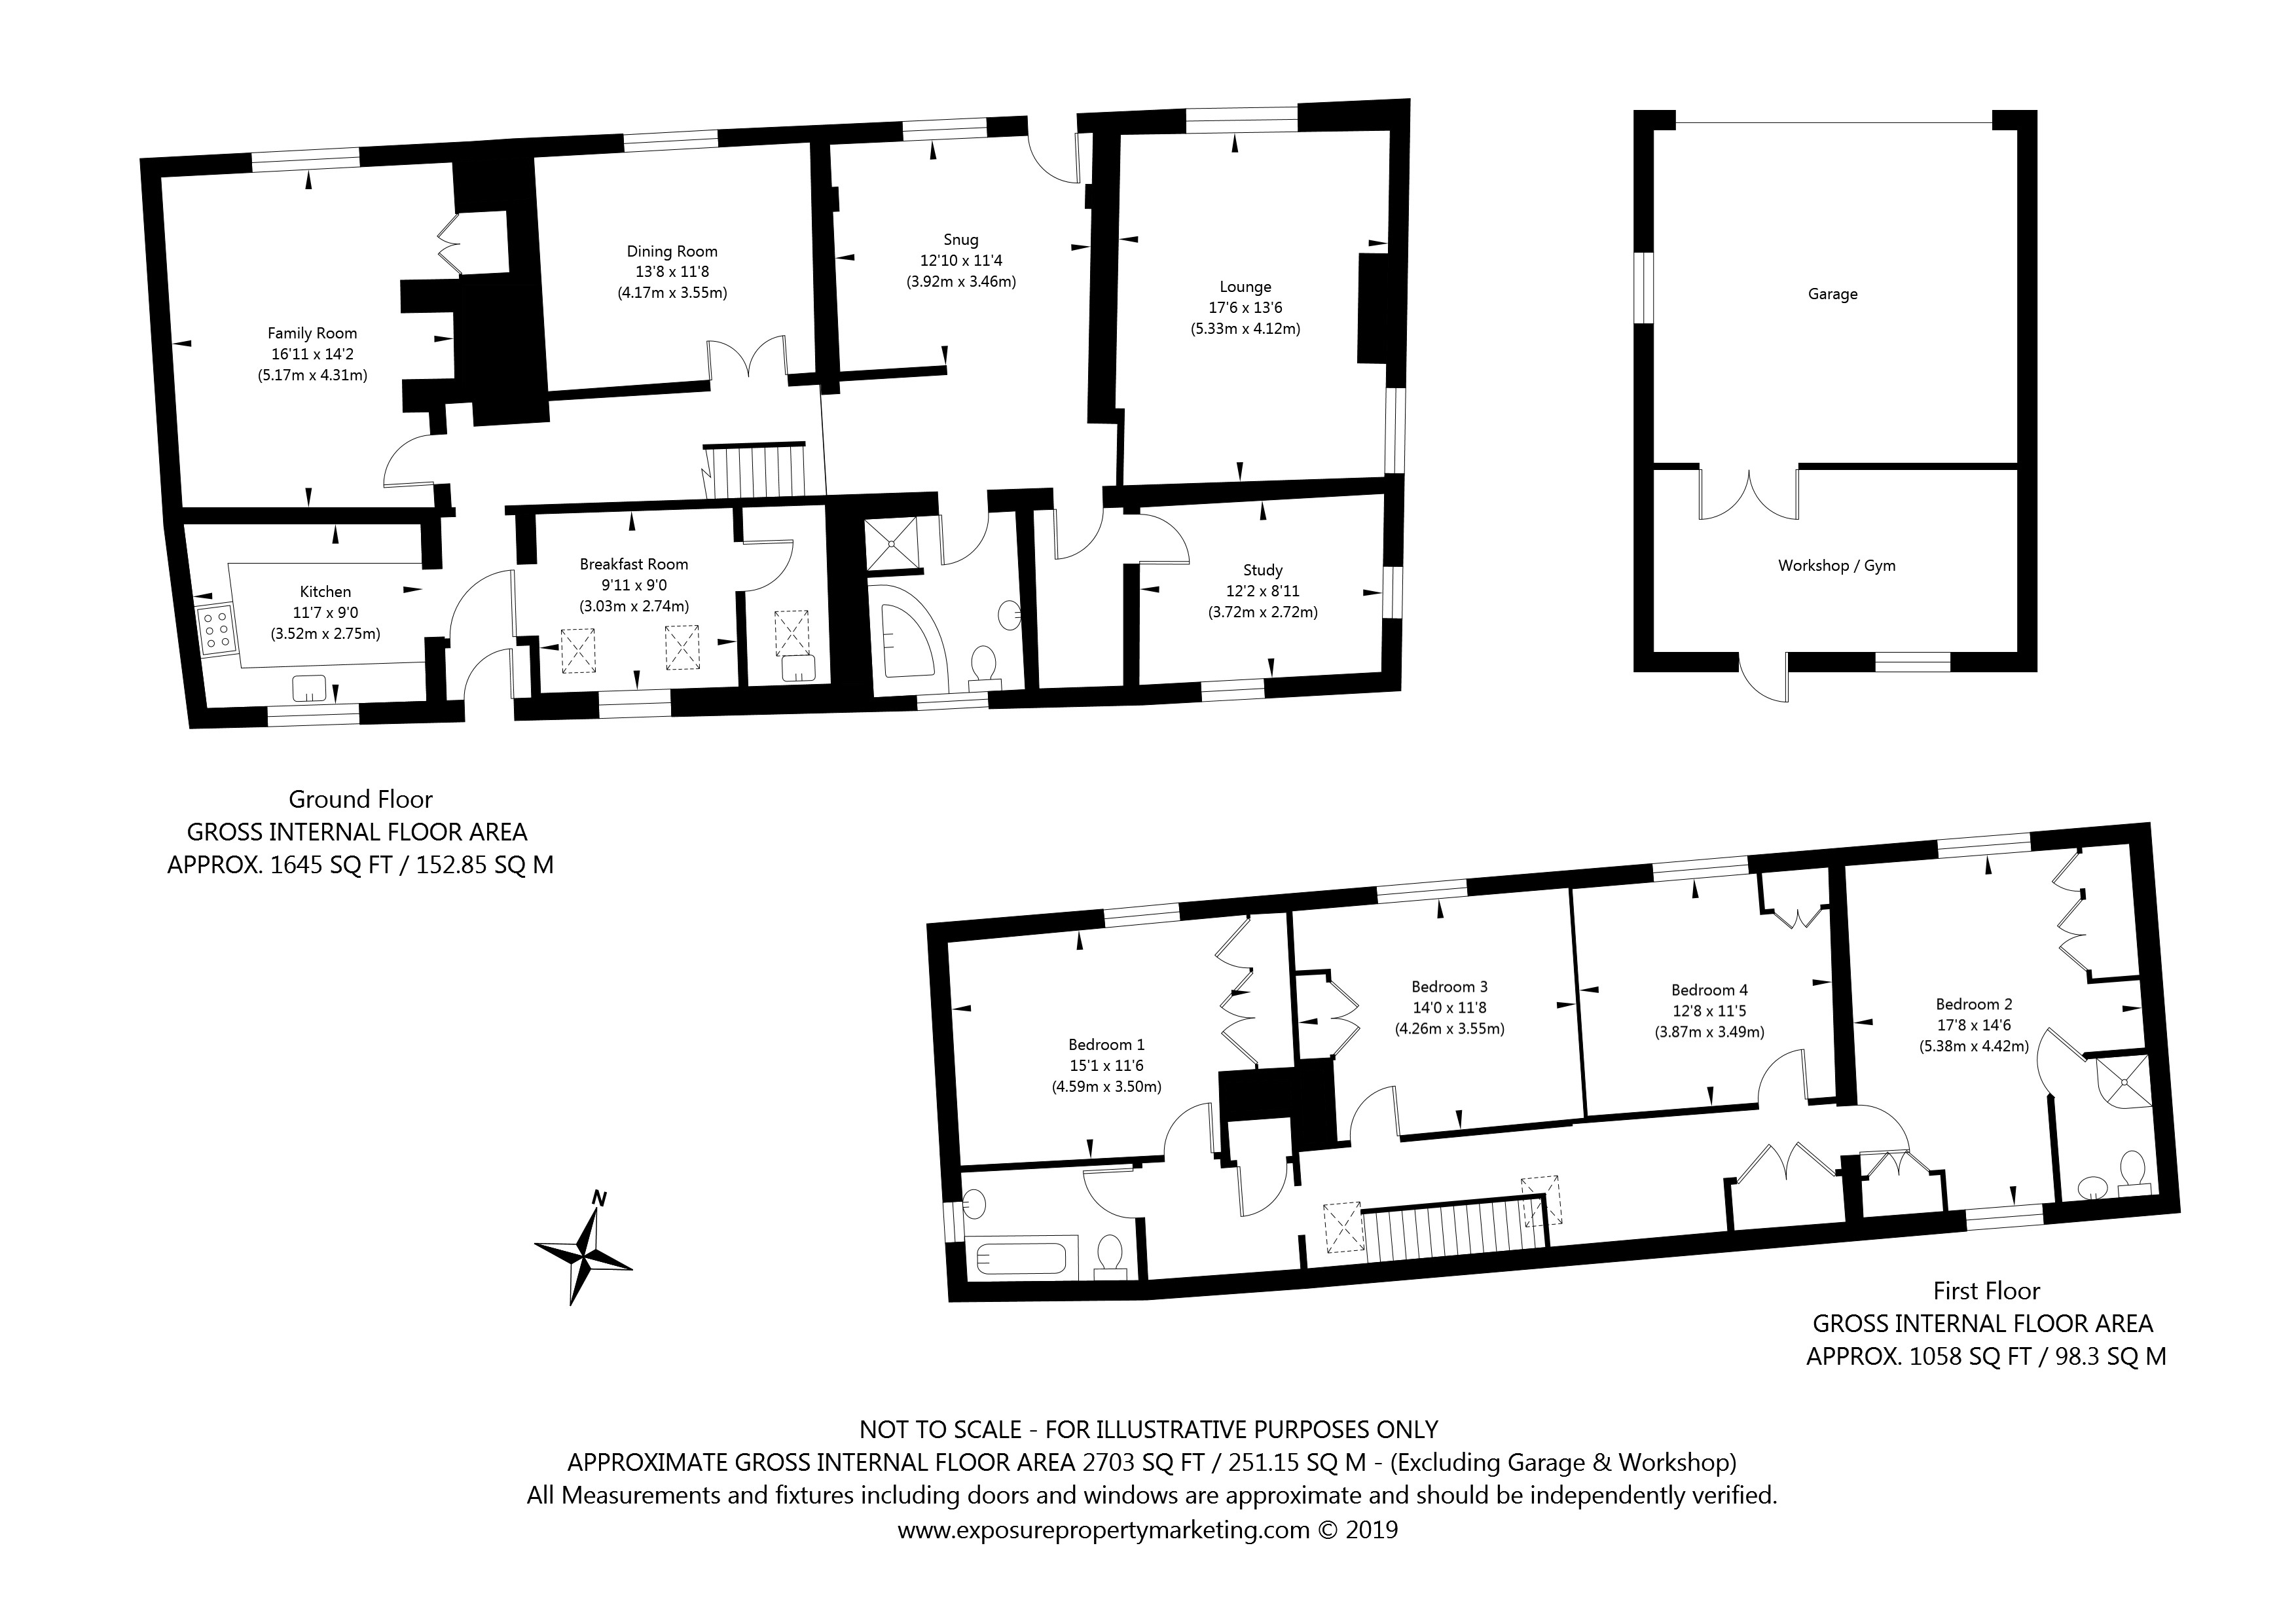 11 Main Street, Wheldrake, York property floorplan